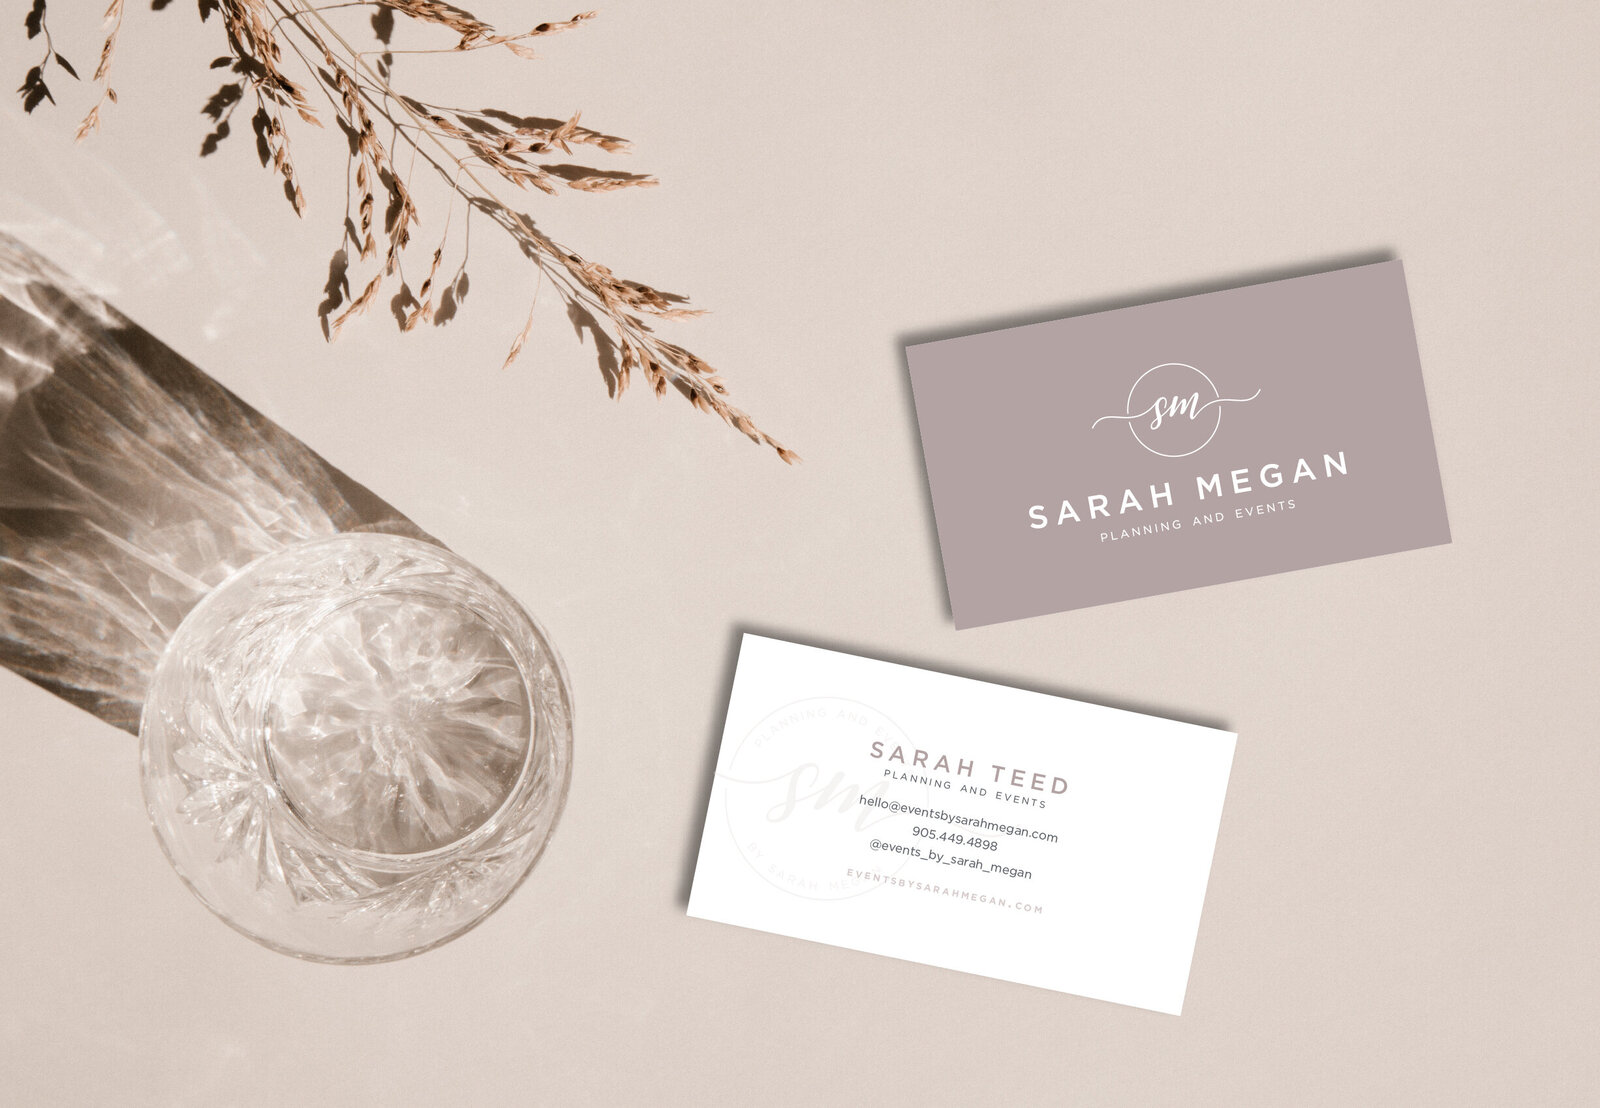 sarah-megan-businesscard-mockup-01